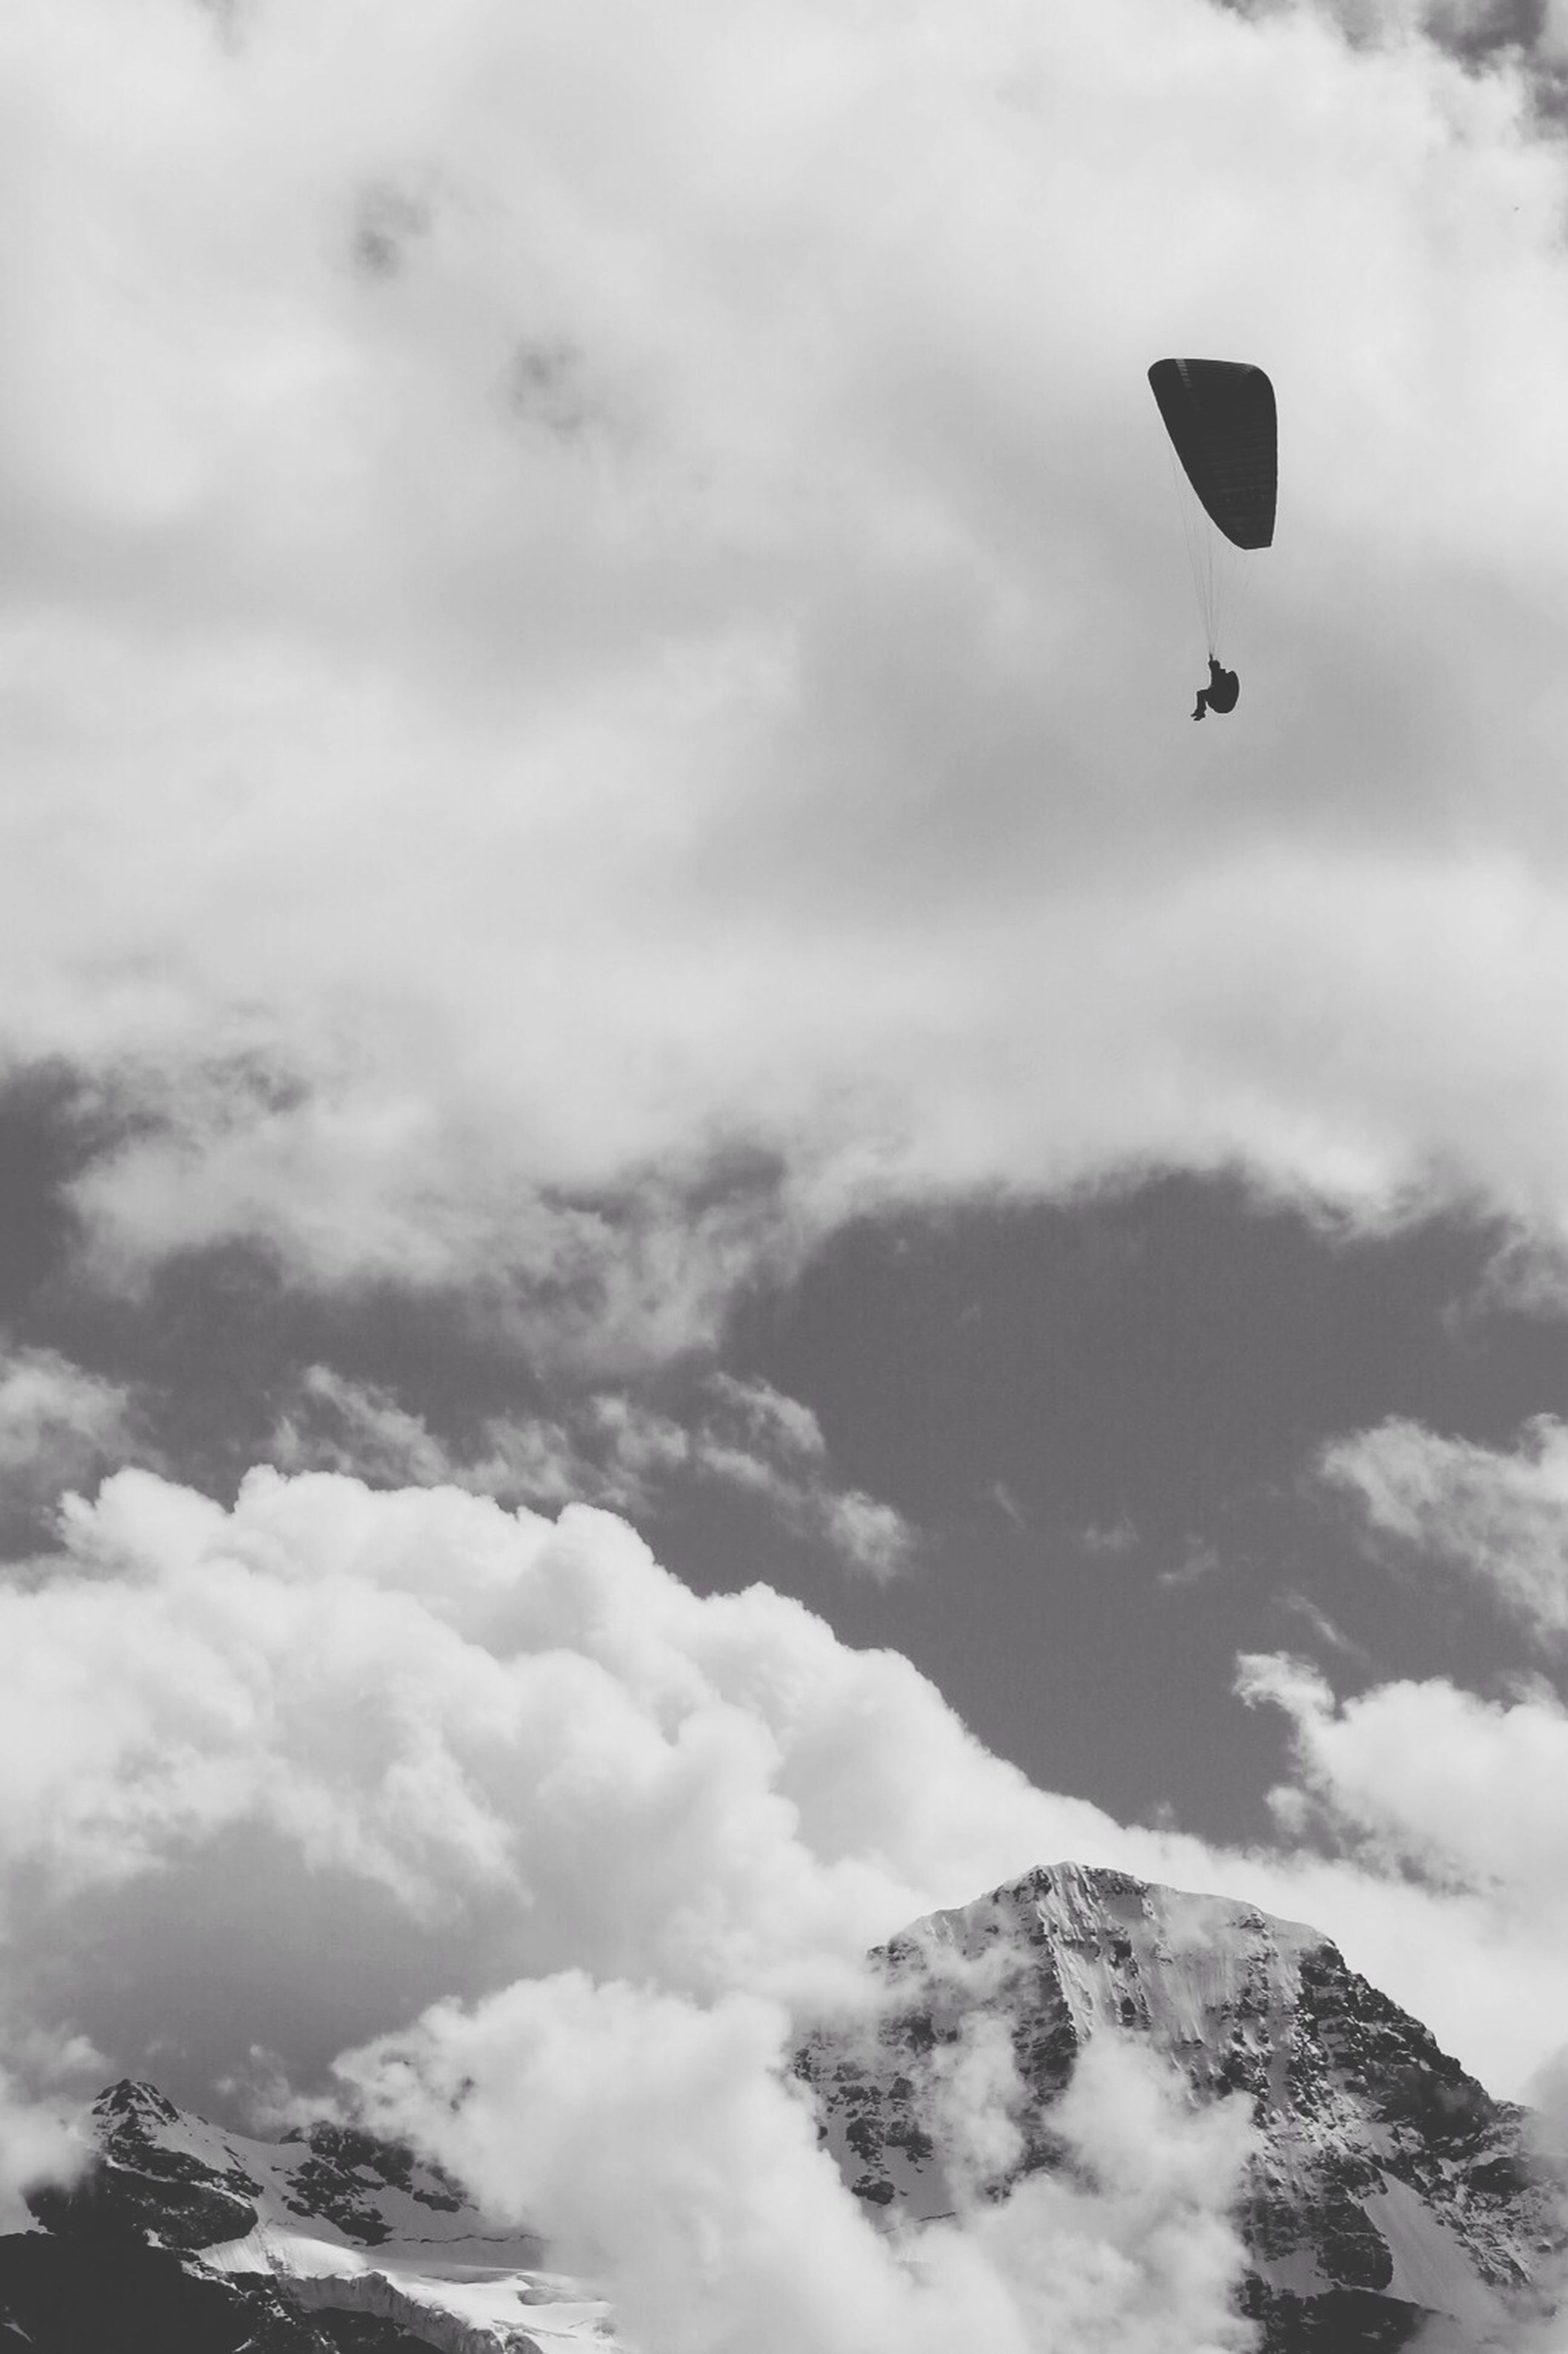 flying, sky, mid-air, low angle view, cloud - sky, parachute, paragliding, adventure, cloud, tranquility, extreme sports, one person, scenics, mountain, nature, unrecognizable person, leisure activity, beauty in nature, cloudy, transportation